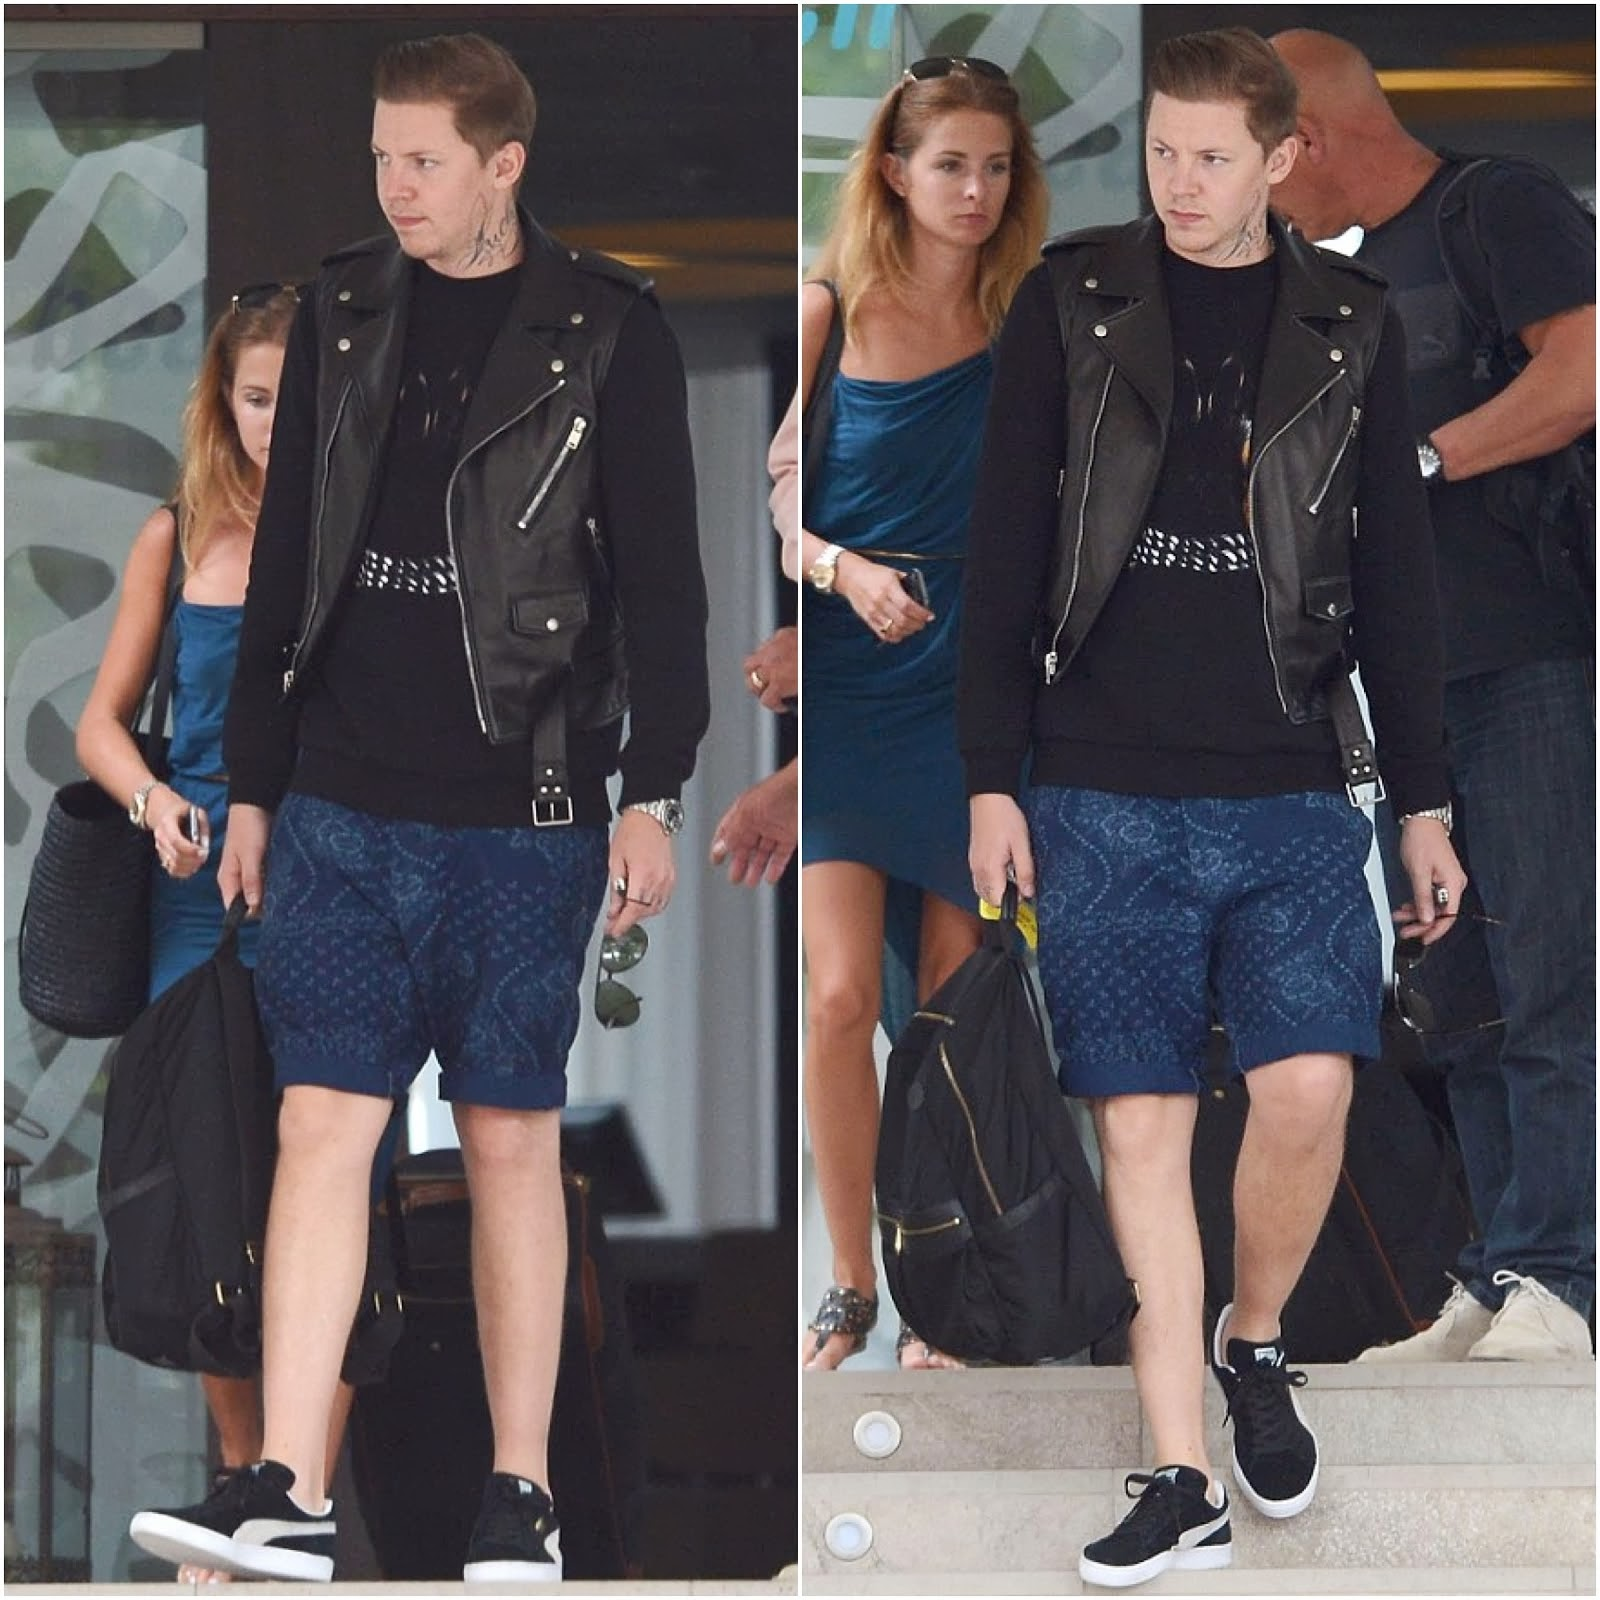 00O00 Menswear Blog: Professor Green's Givenchy Doberman Sweater, Mulberry Henry bag and Puma sneakers, Ibiza July 2013